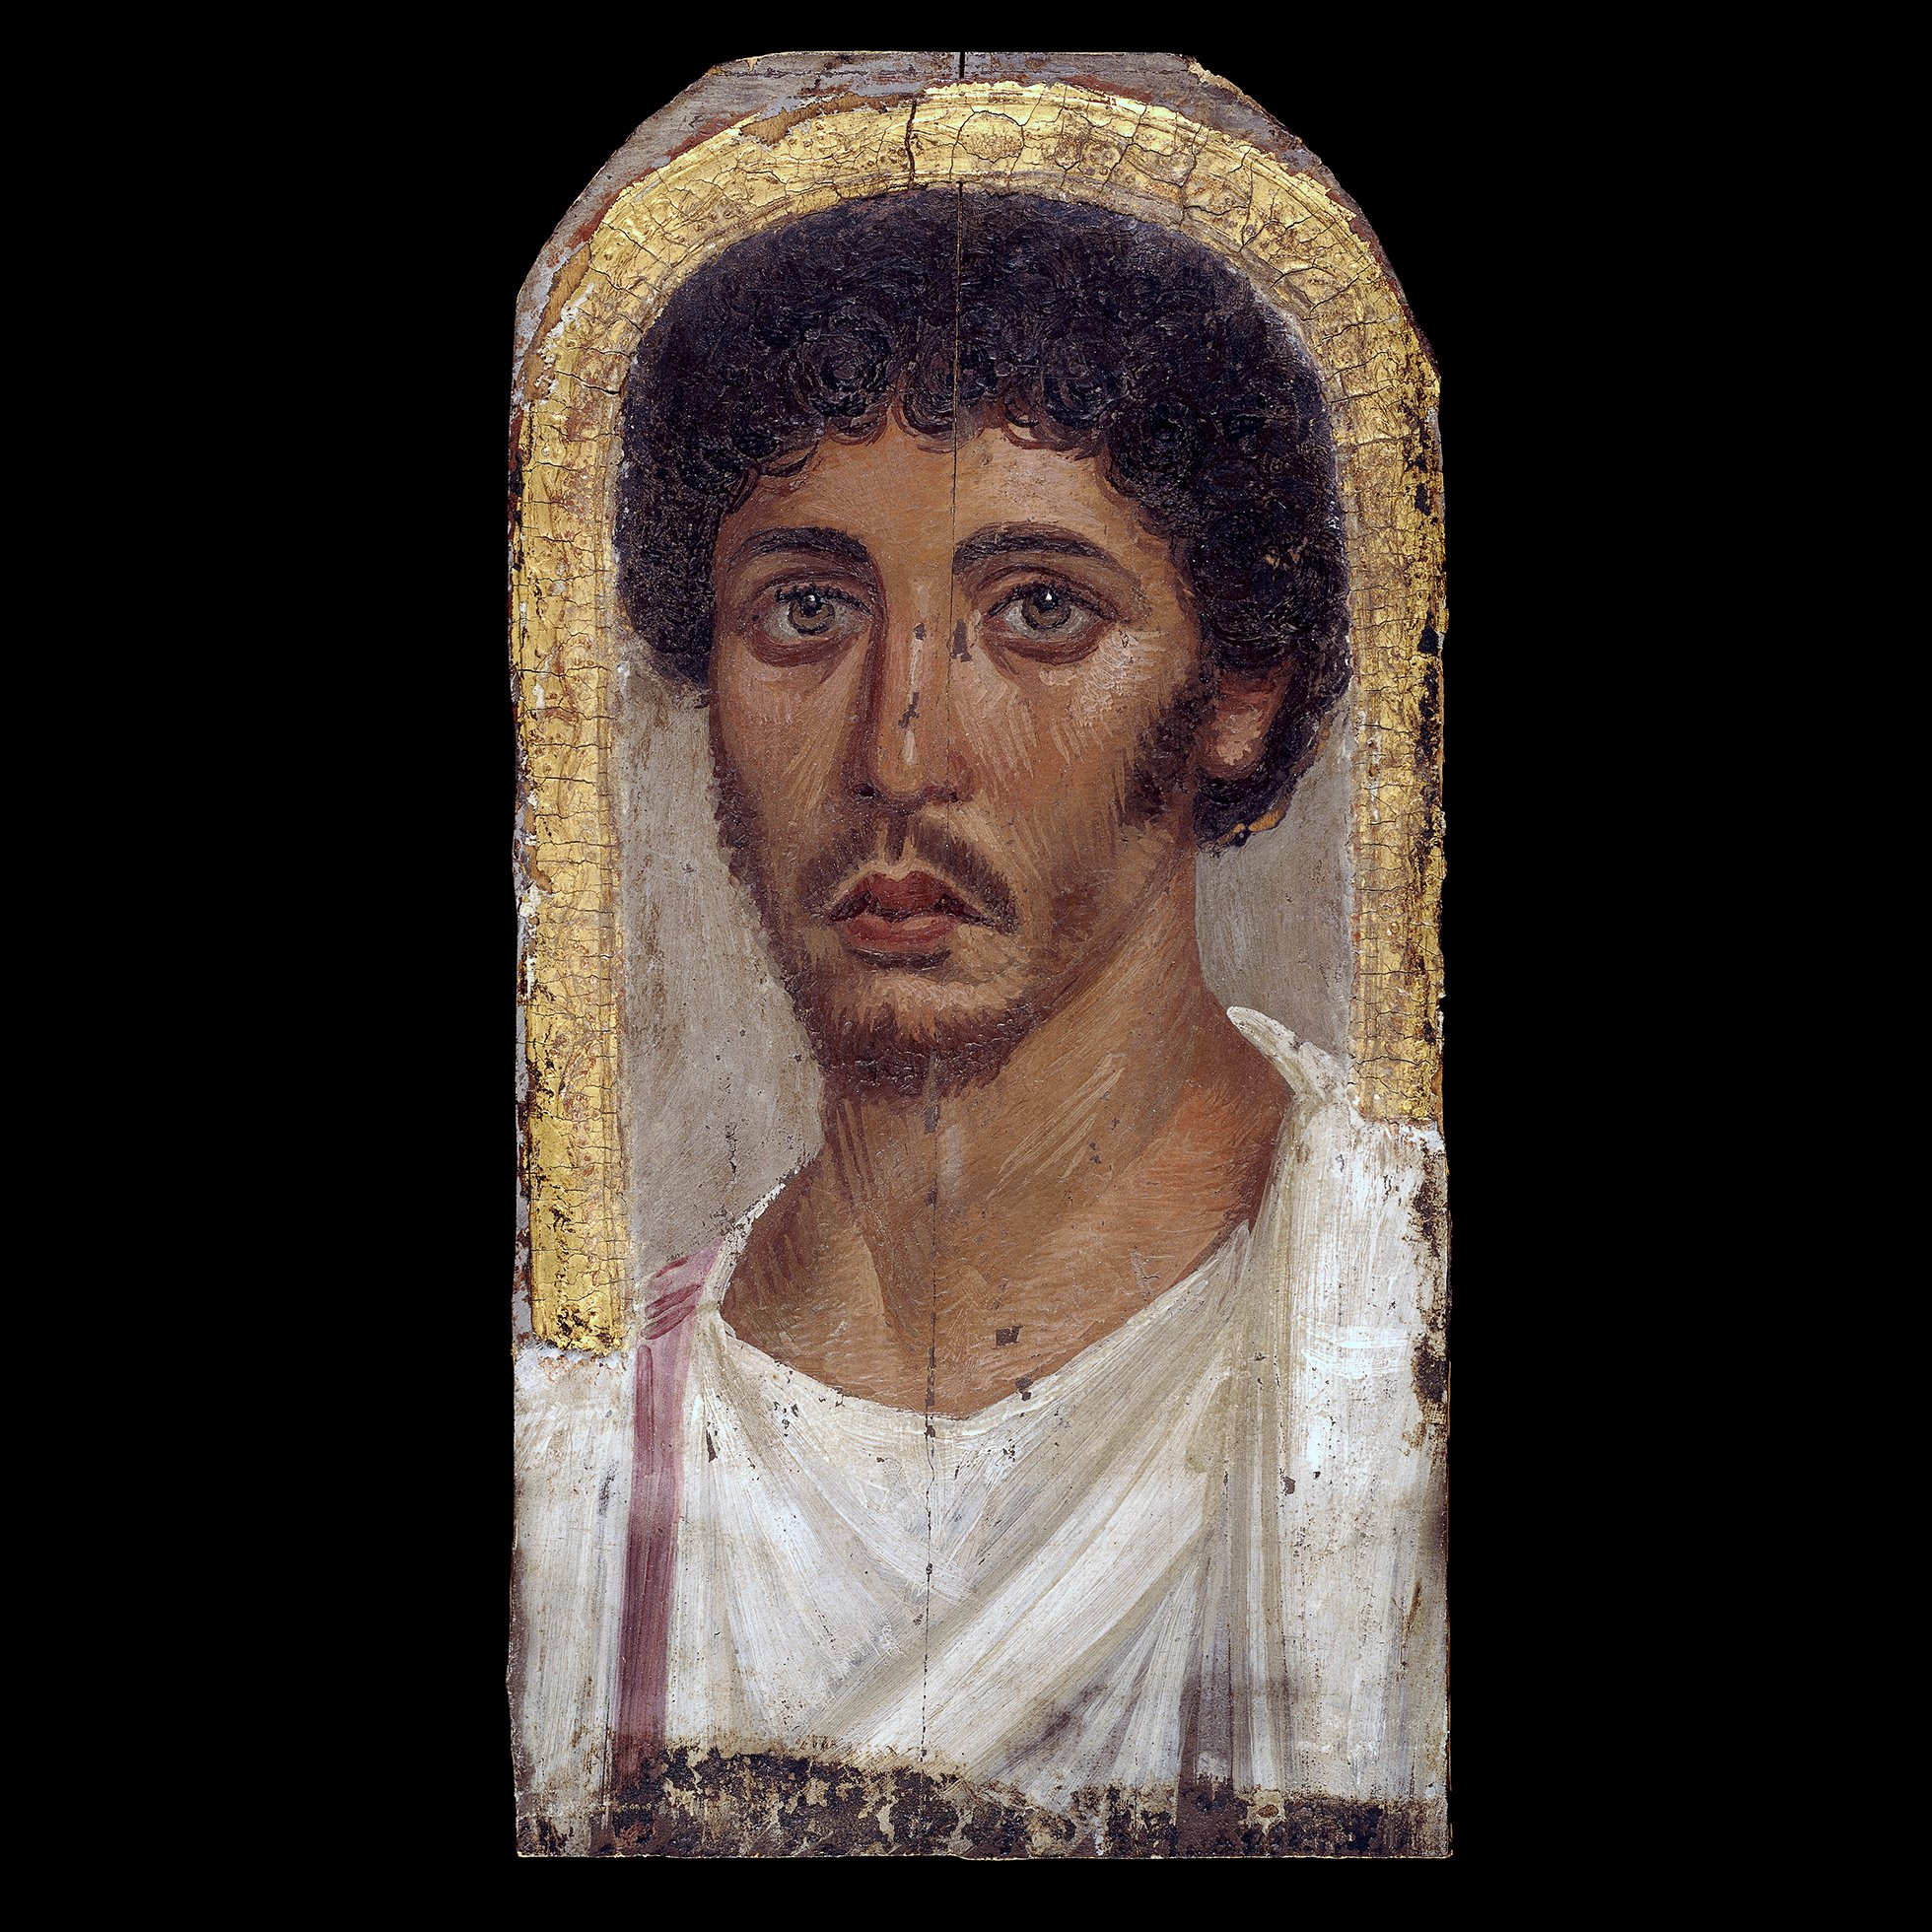 A detailed and lifelike portrait of a young man, with dark brown curly hair, a moustache and beard. He is wearing a white tunic with a purple stripe, and the portrait is enclosed by a gold frame.